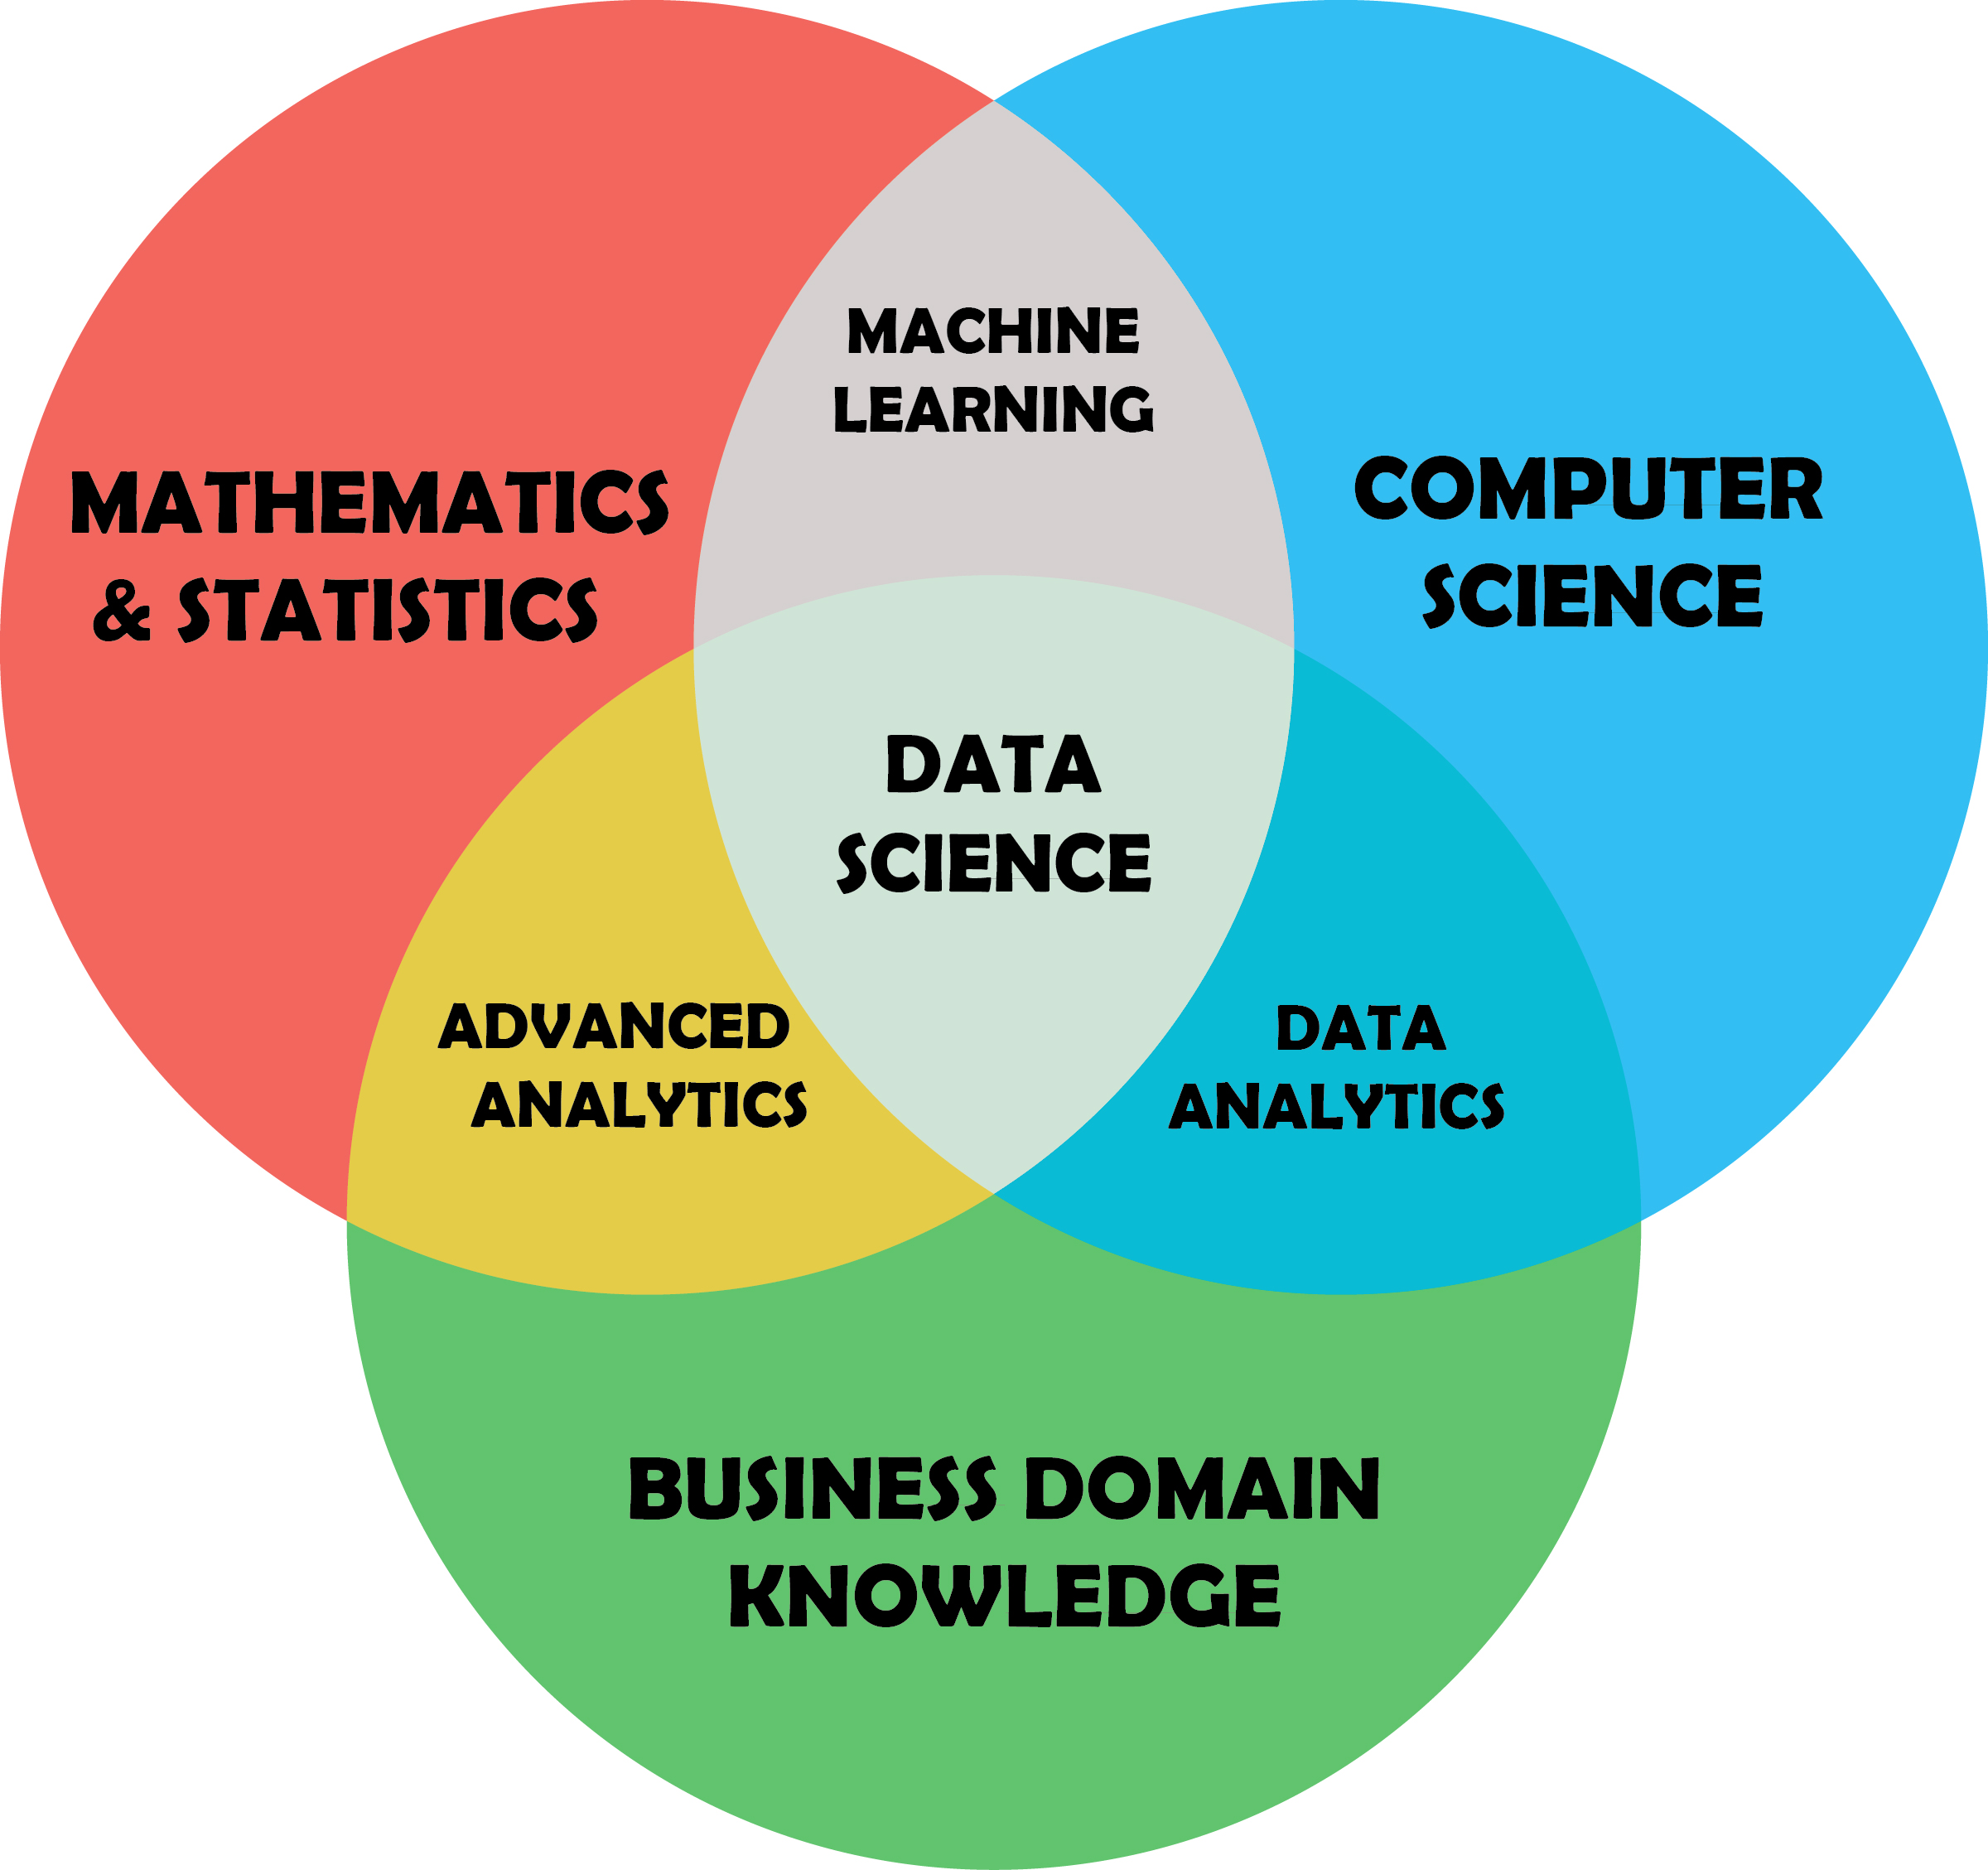 Learn By Coding Examples for Beginners: Tabular Text & Image Data Analytics as well as Time Series Forecasting in Python & R